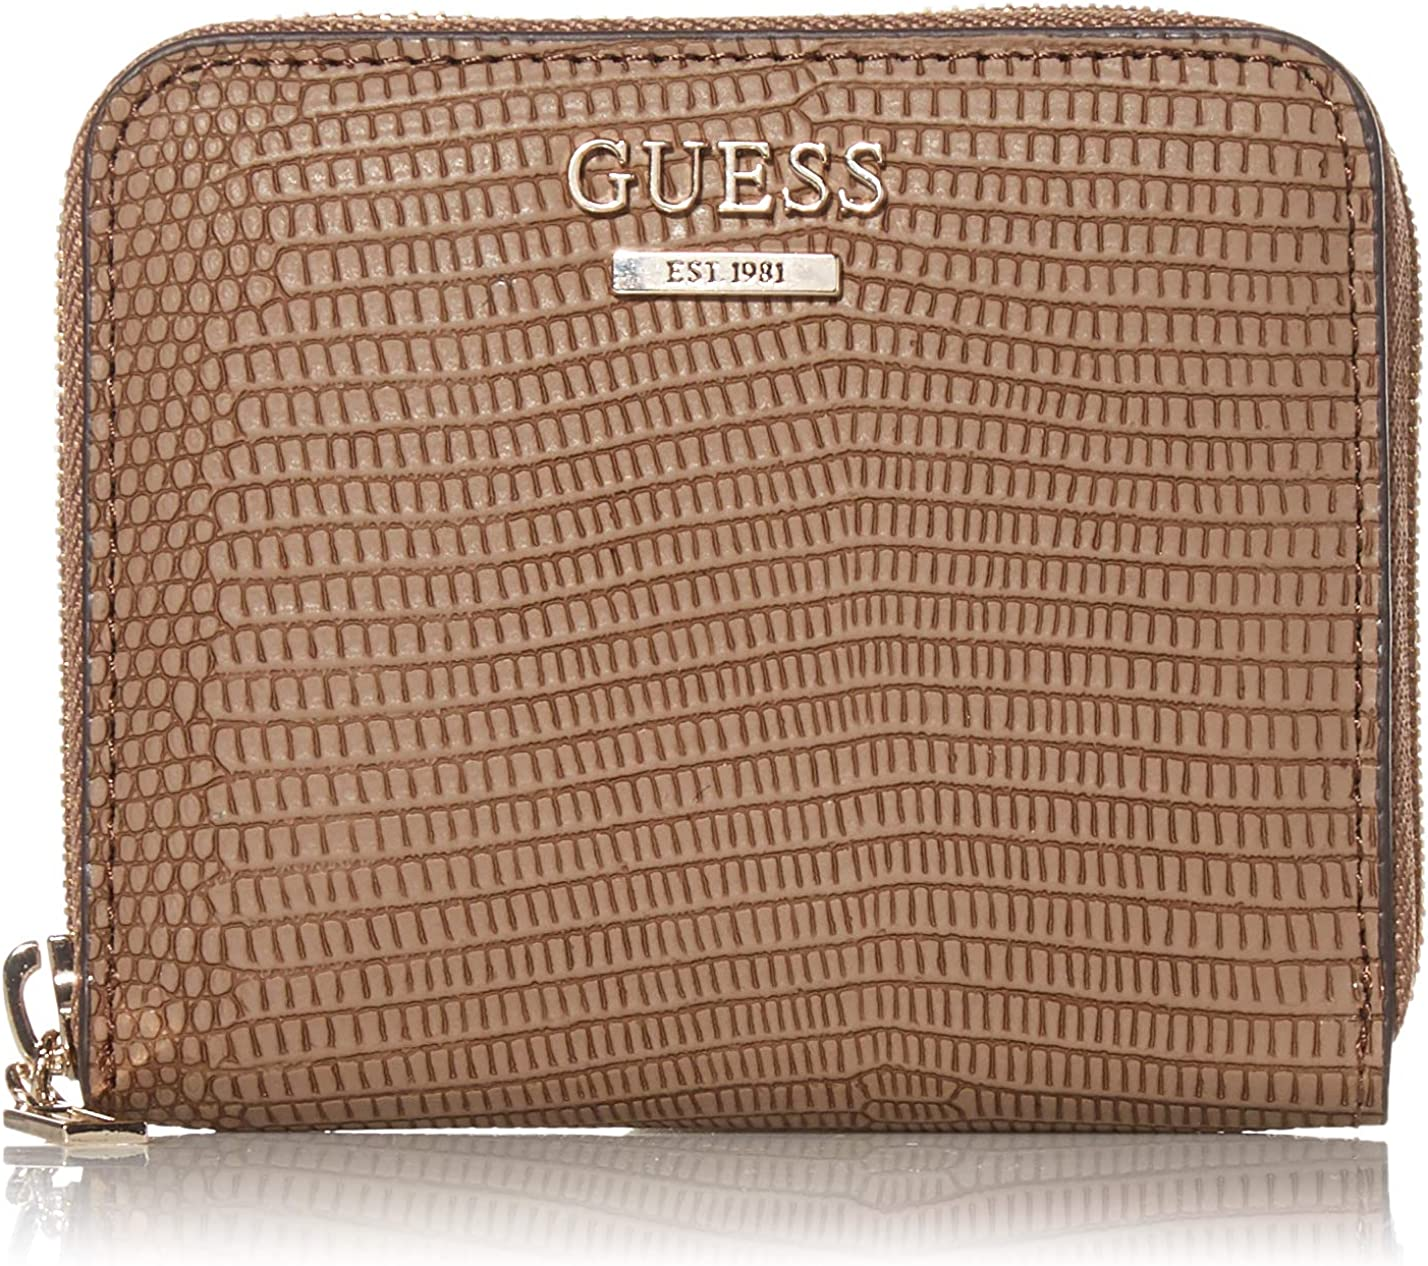 GUESS Women's OFFicial store Lyndi favorite Small Wallet Zip Around